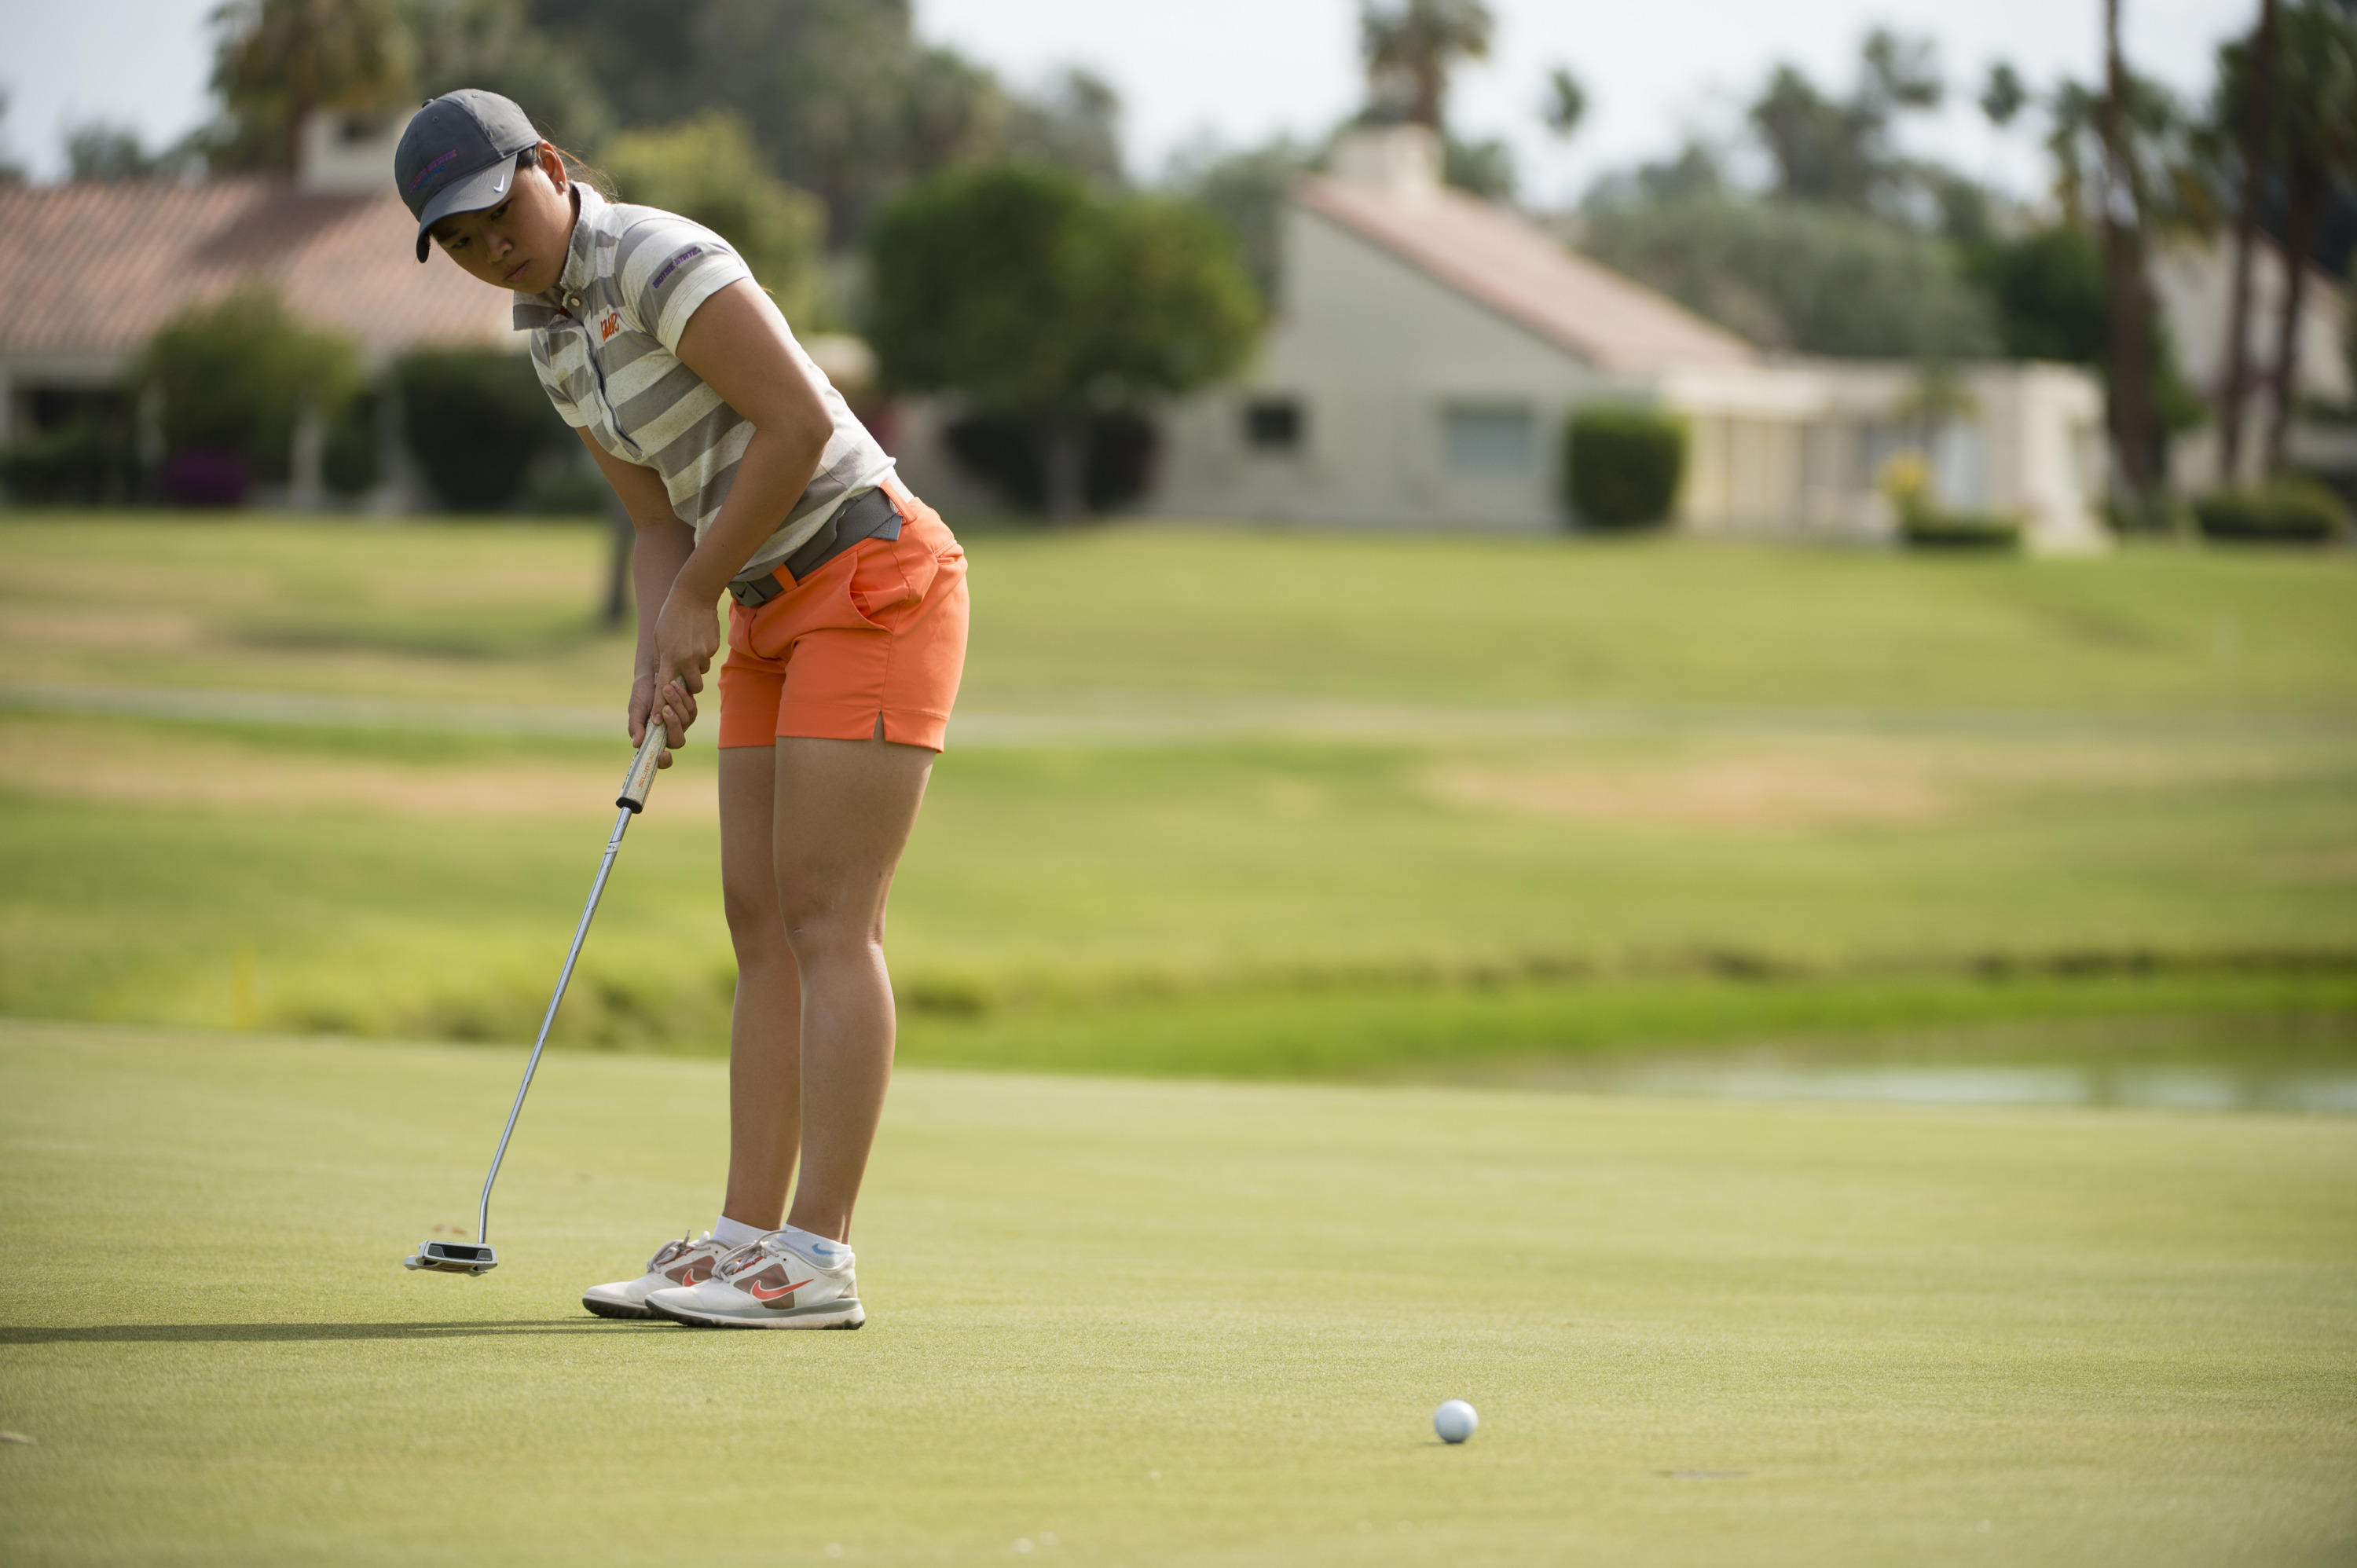 Genevieve Ling is the first women's golfer since 2000 to compete at the NCAA Regional Championships.